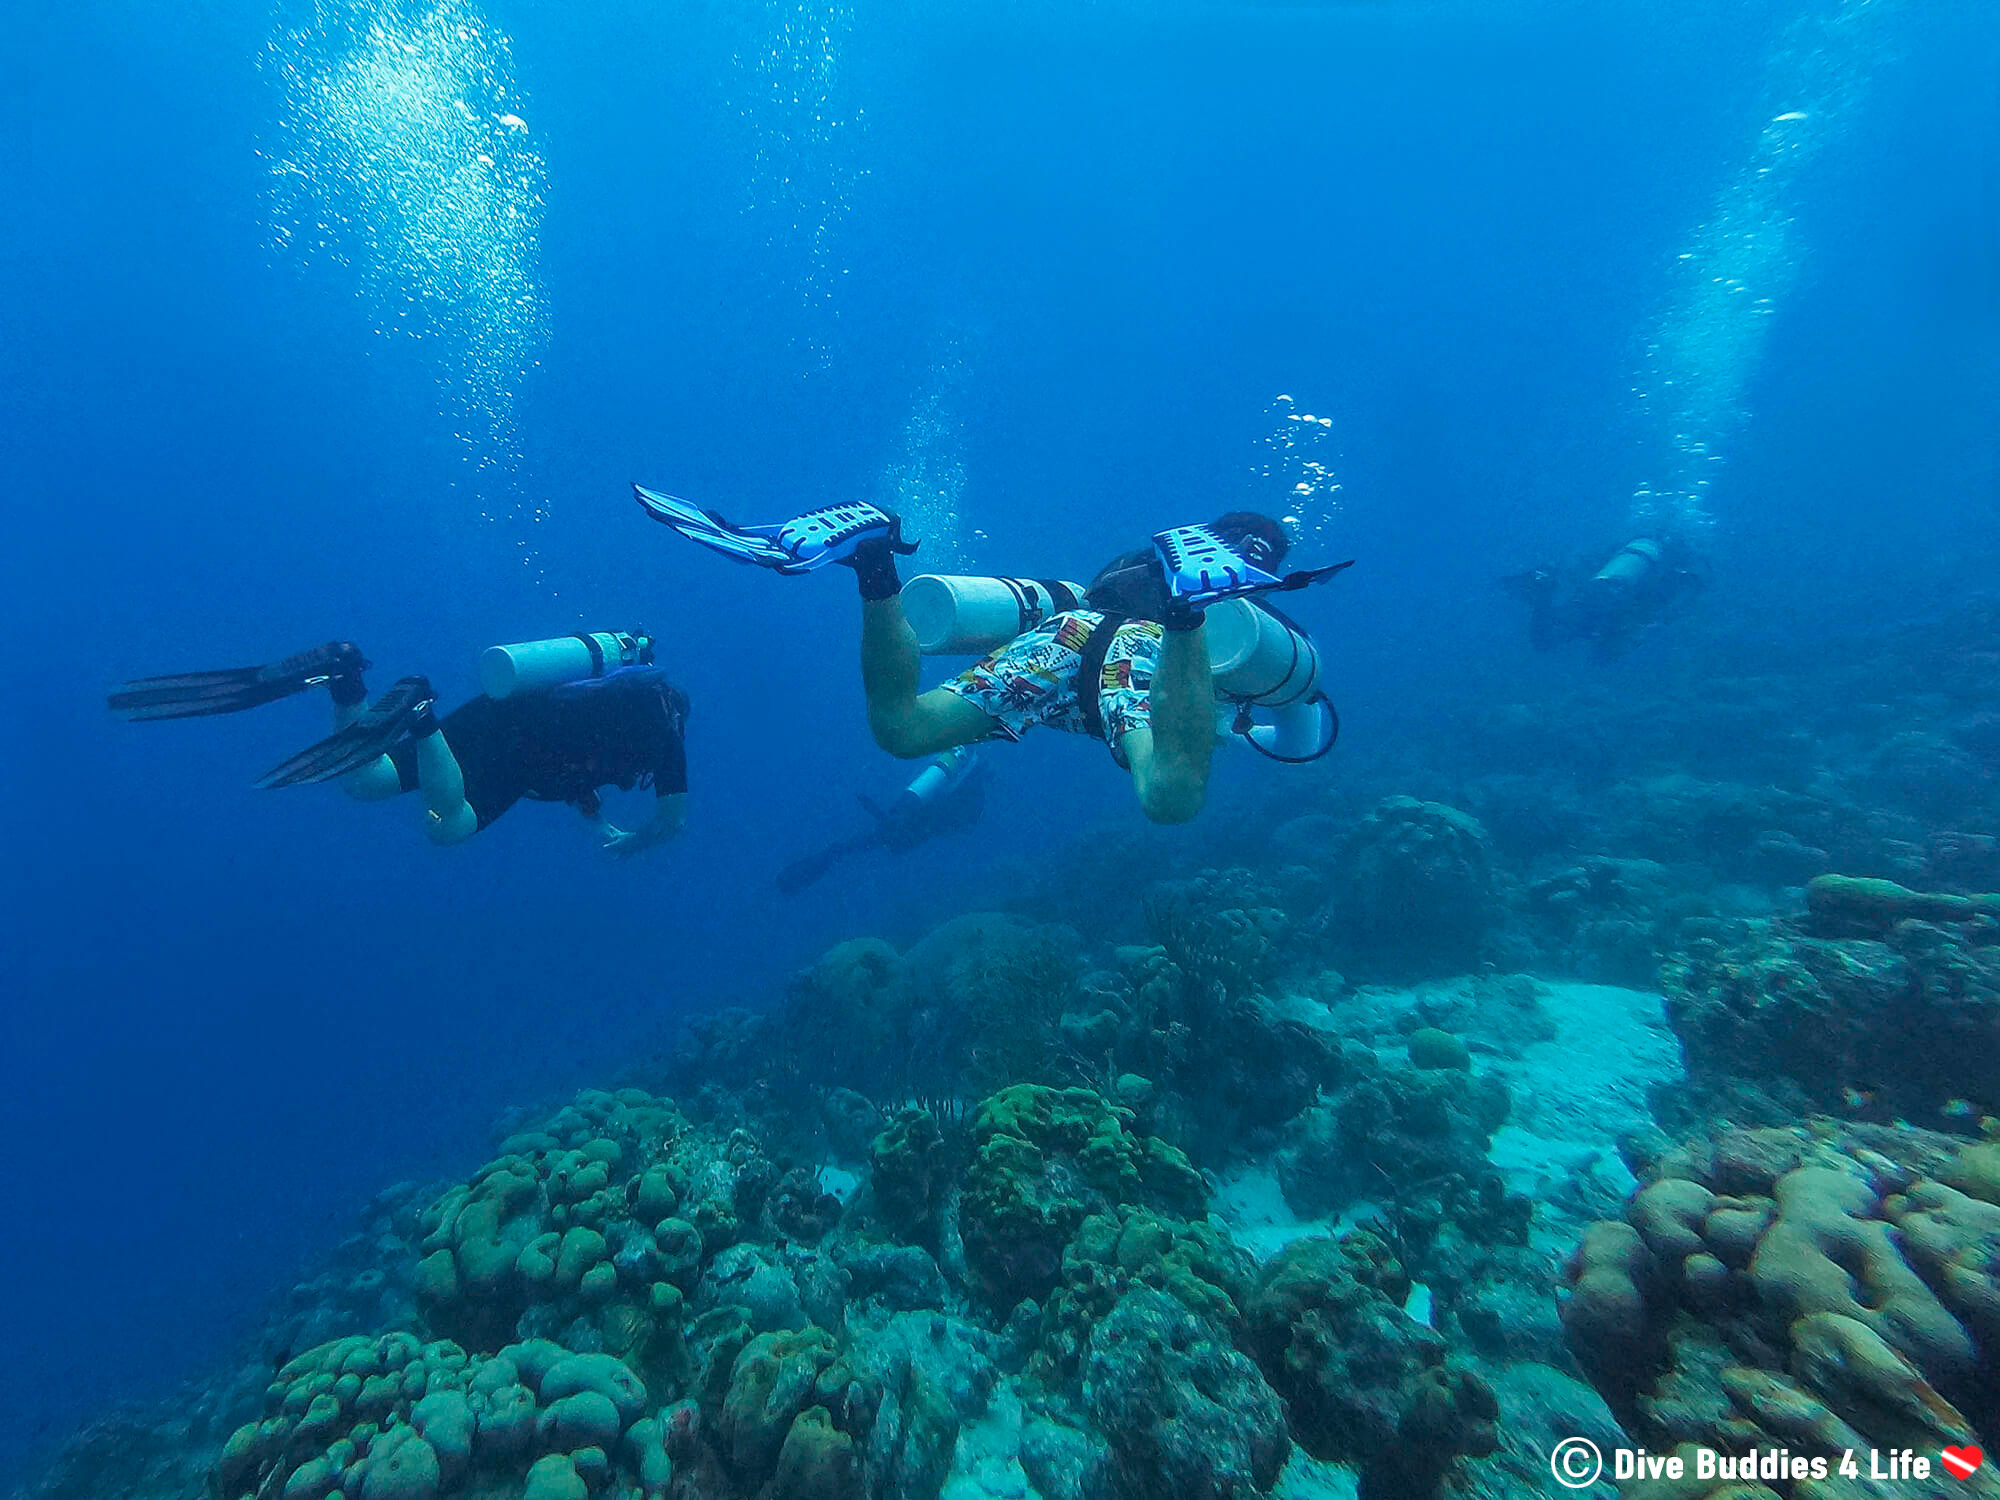 Joey And A Group Of Scuba Divers Sidemounting Along The Coral Reef In Bonaire, Dutch Caribbean